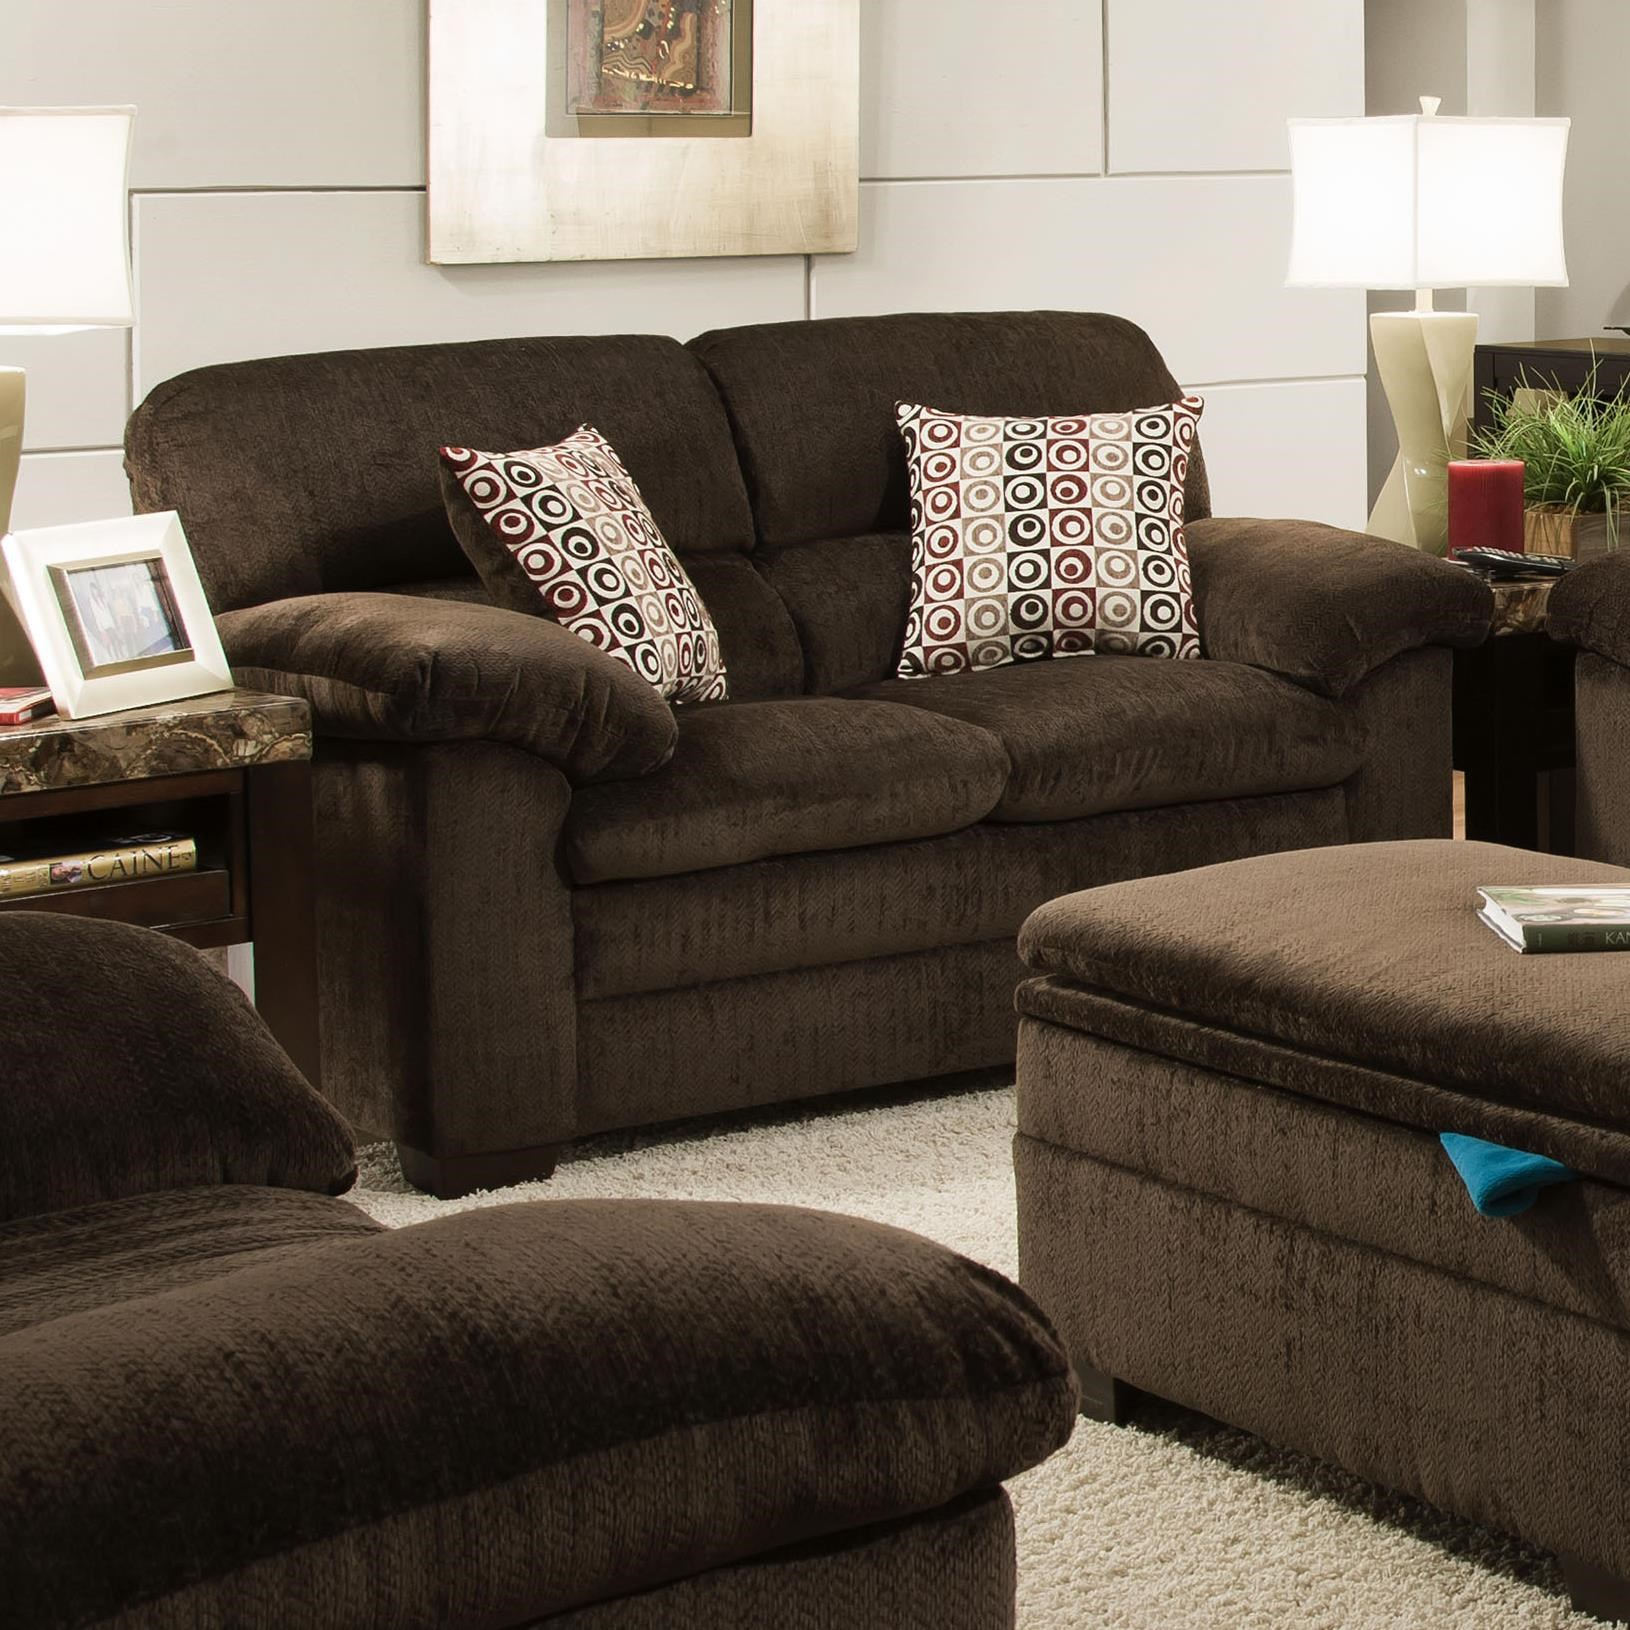 Marvelous Simmons Upholstery 3684 Stationary Loveseat With Pillow Top Arms U0026 Exposed  Wood Legs   Dunk U0026 Bright Furniture   Love Seats